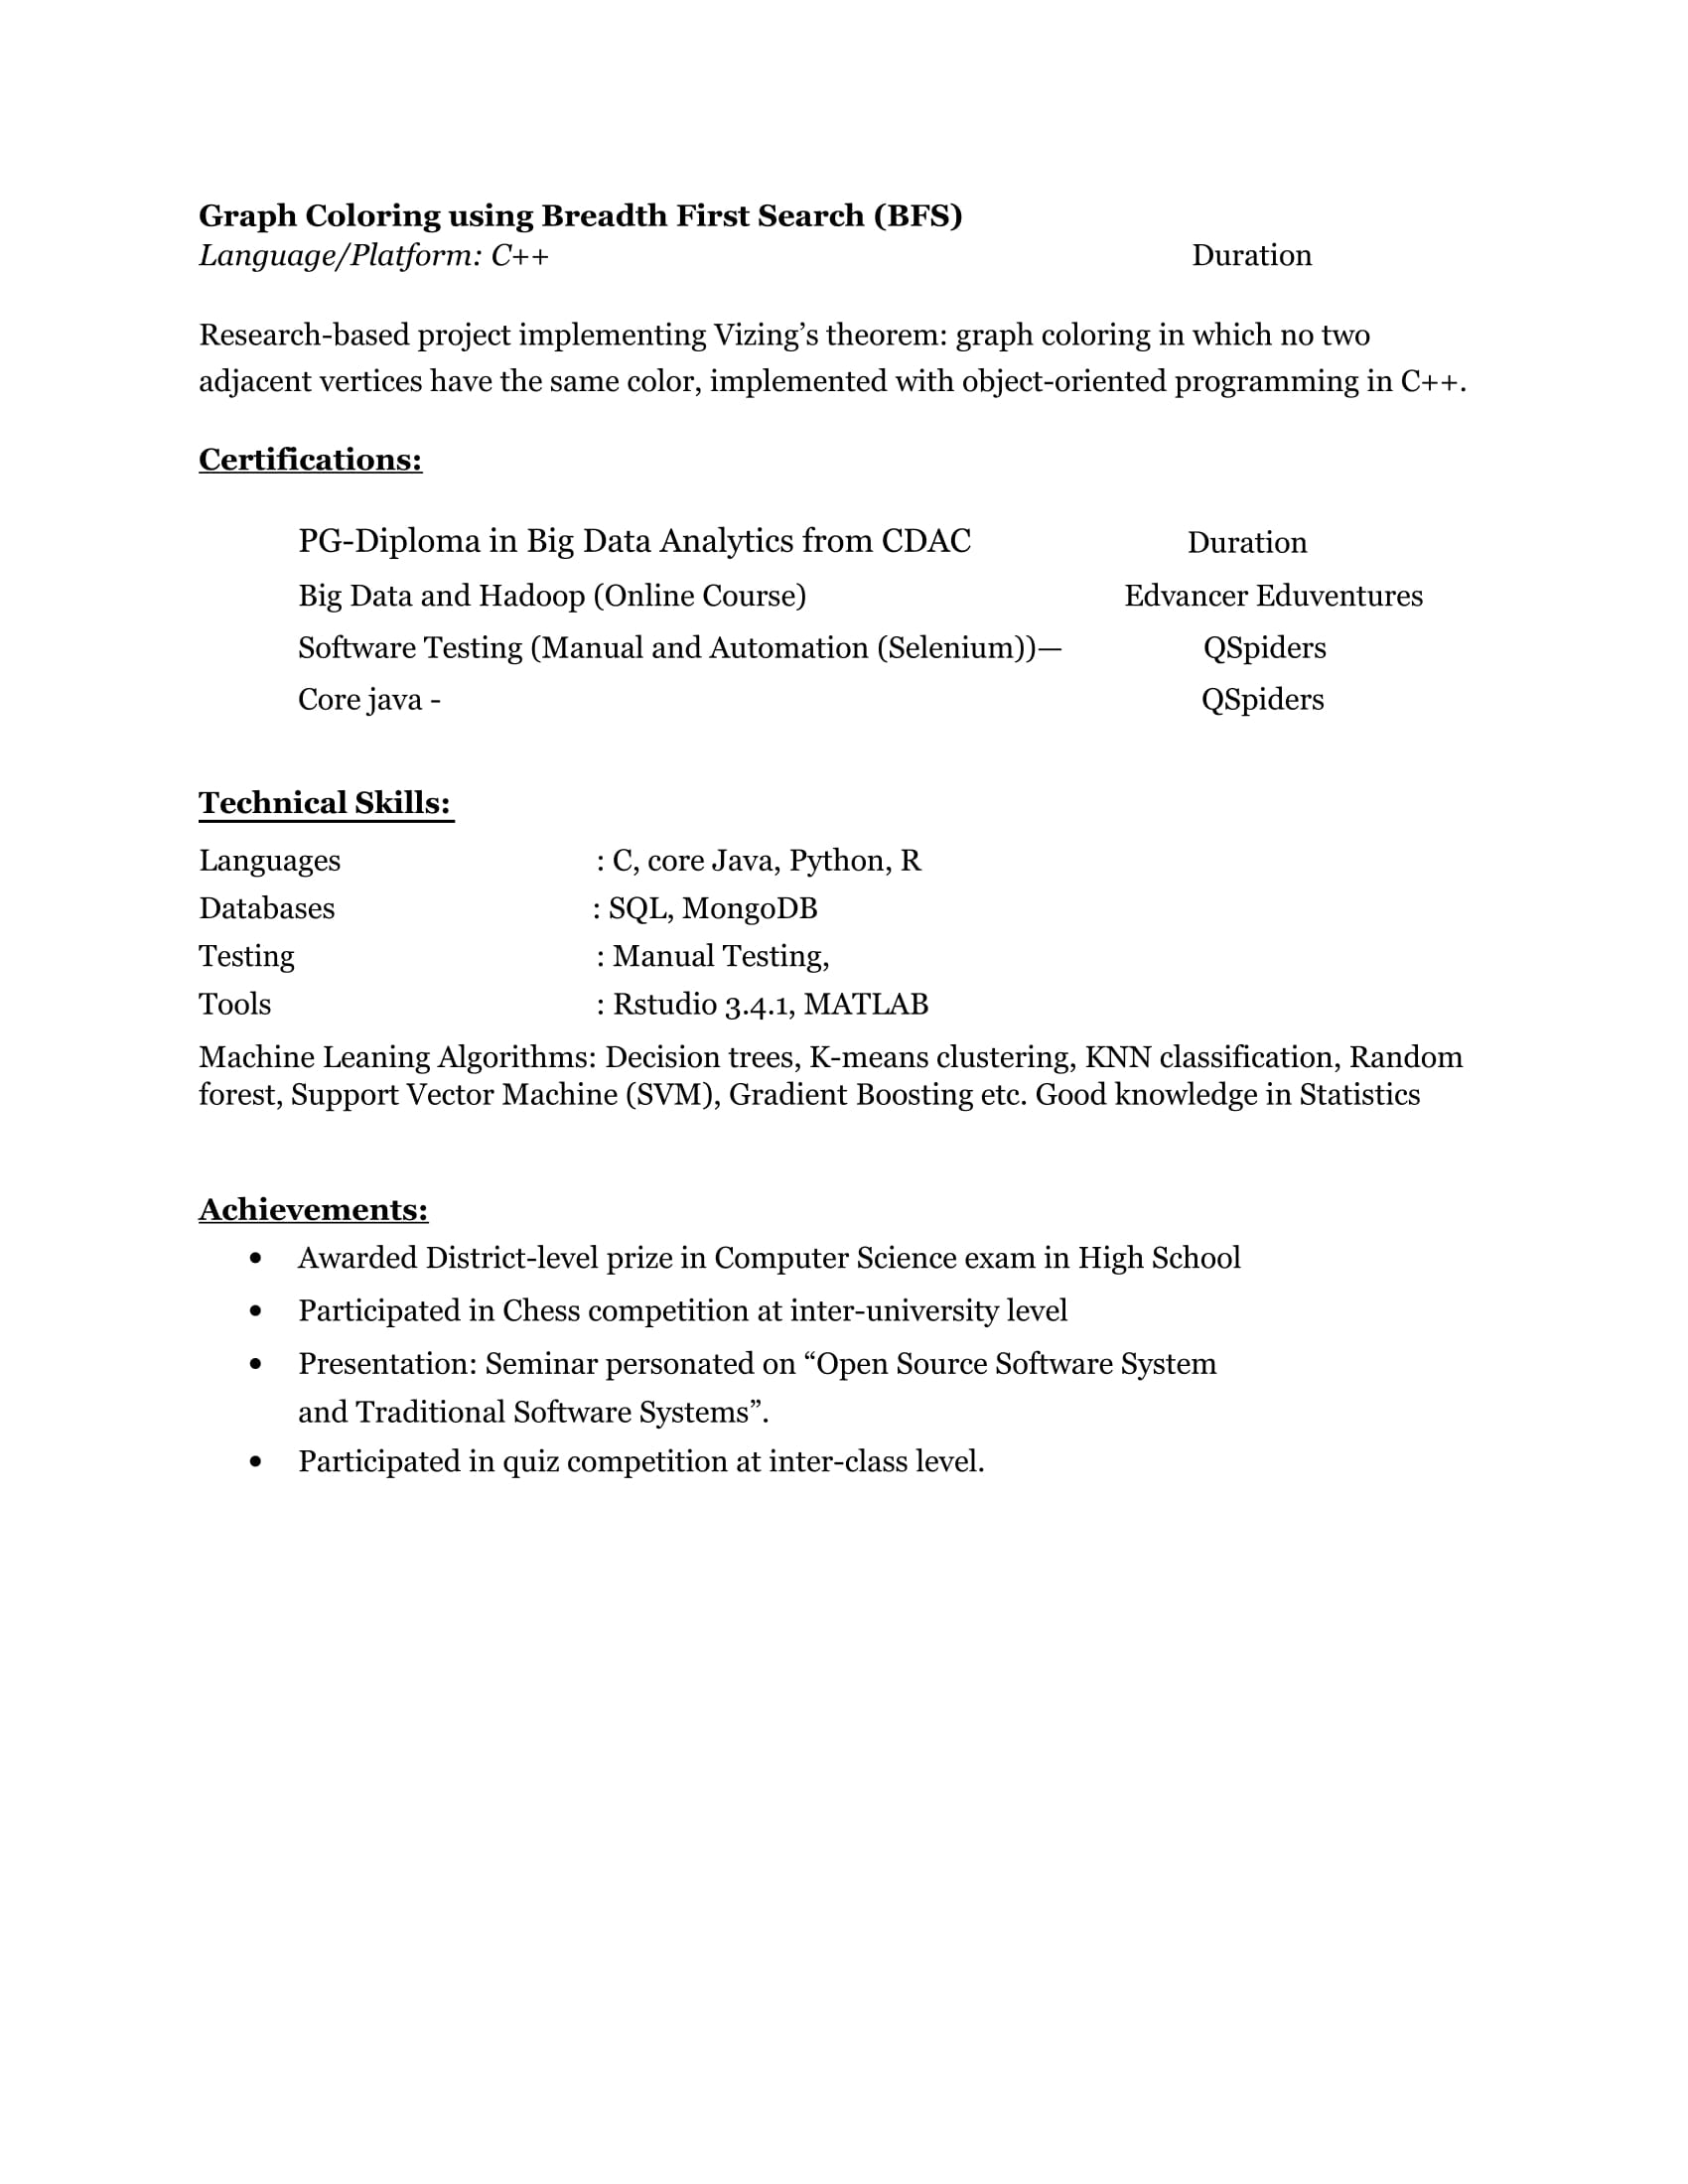 Resume Templates For Big-Data Analytics Freshers - Download Free